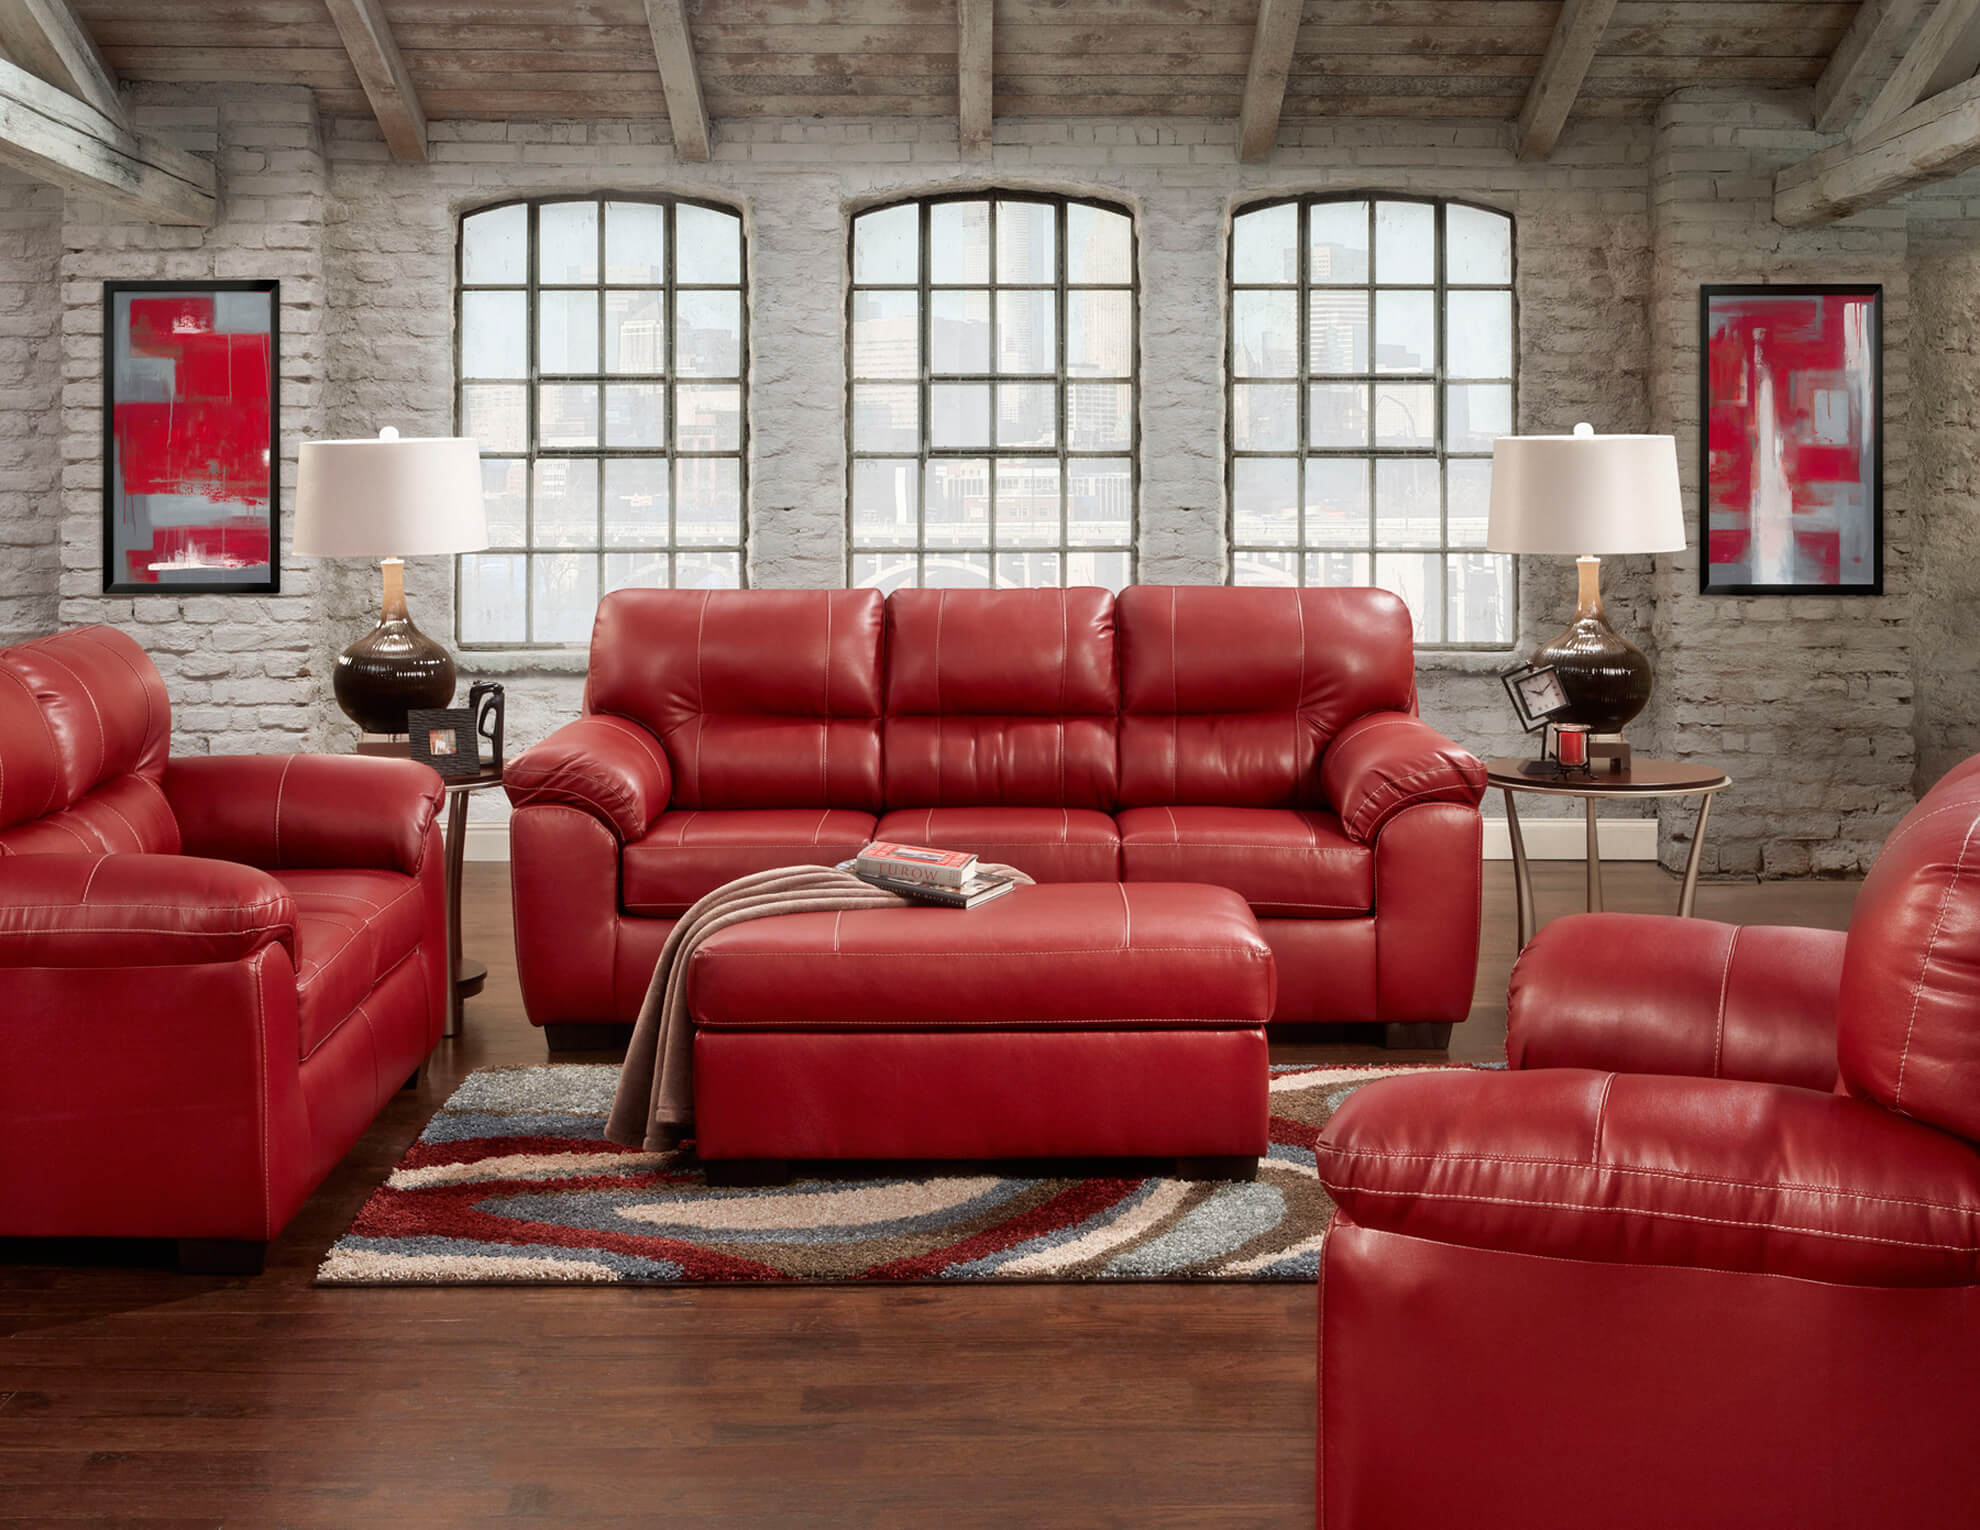 Red Sofa Set with Wood Trim - Traditional Leather Sofa Set with ...